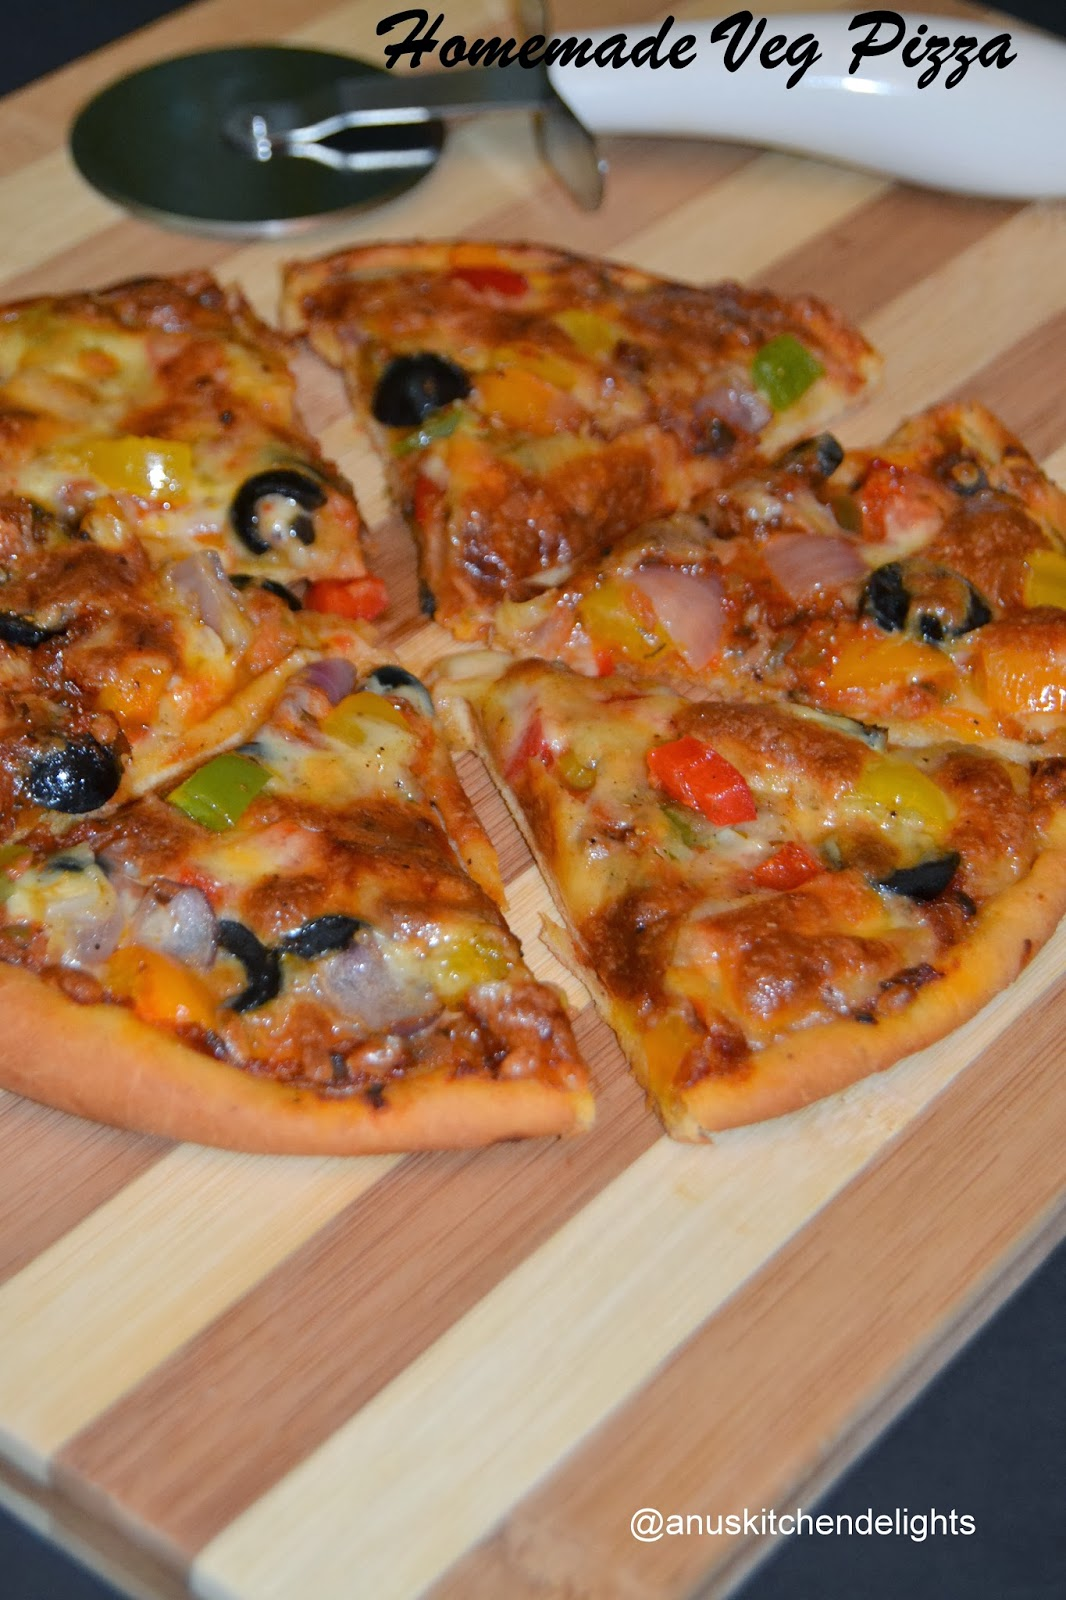 how to prepare veg pizza at home